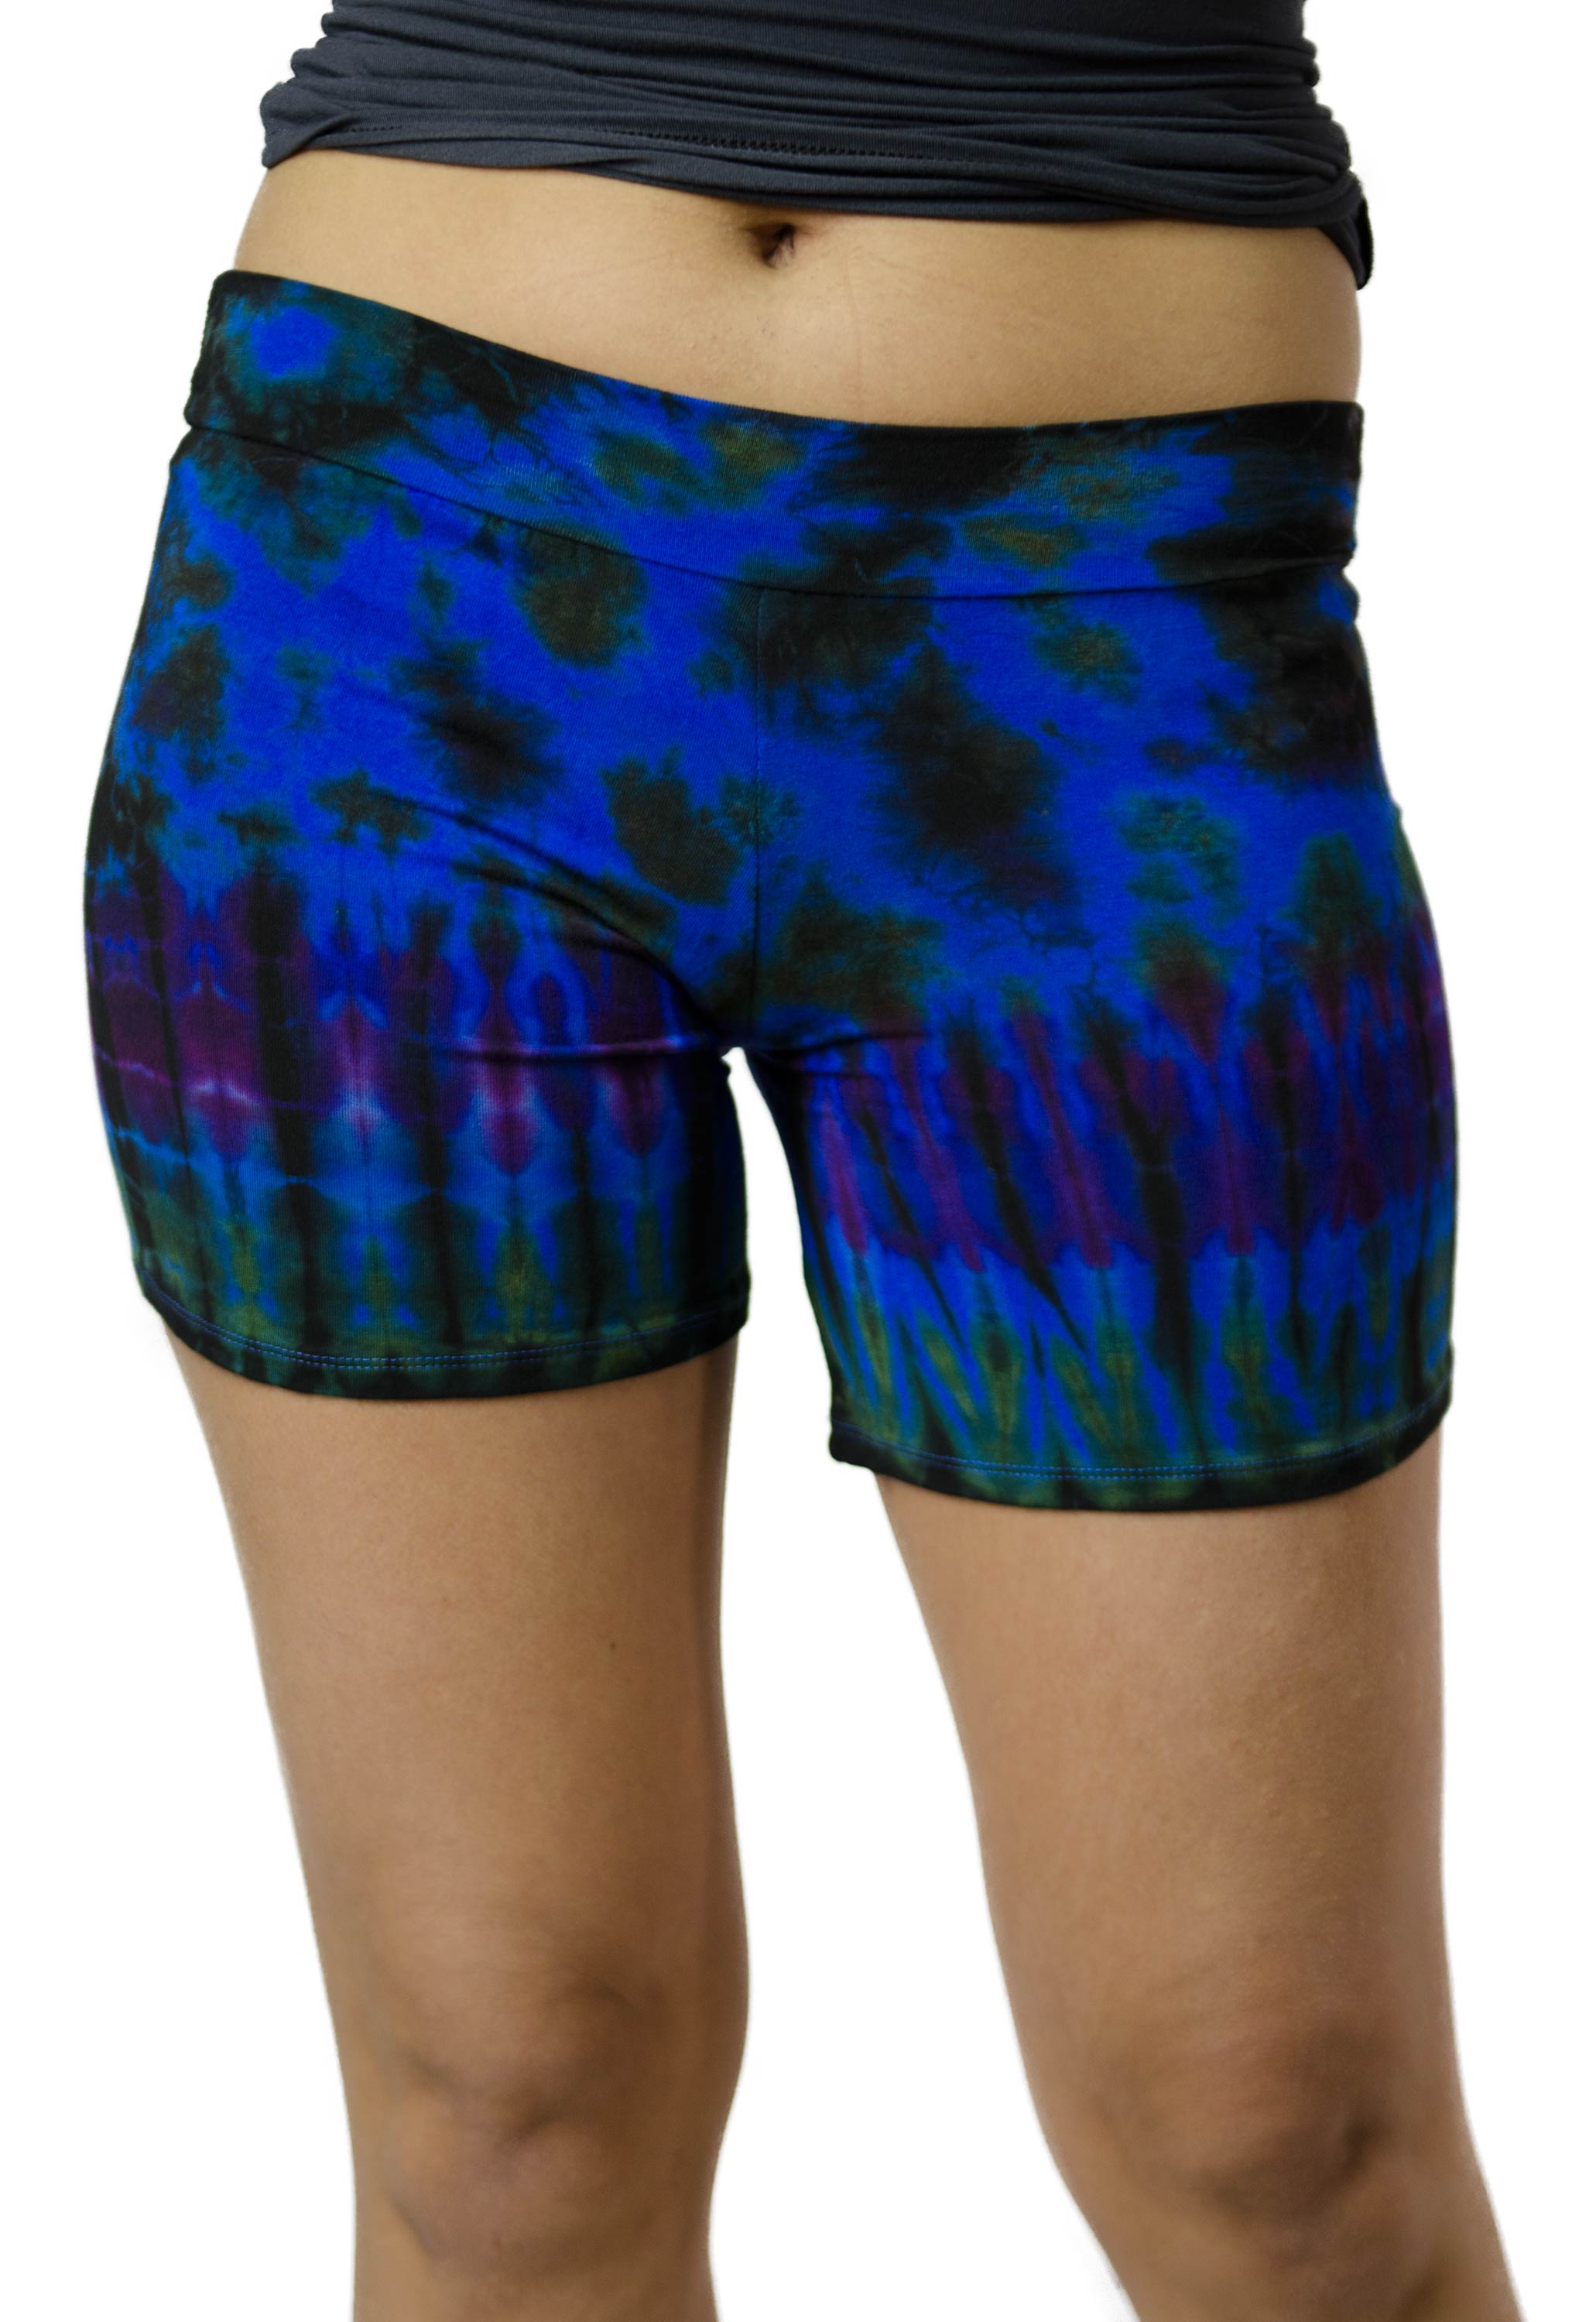 Hand Painted Tie Dye Mini Shorts - Blue Multi